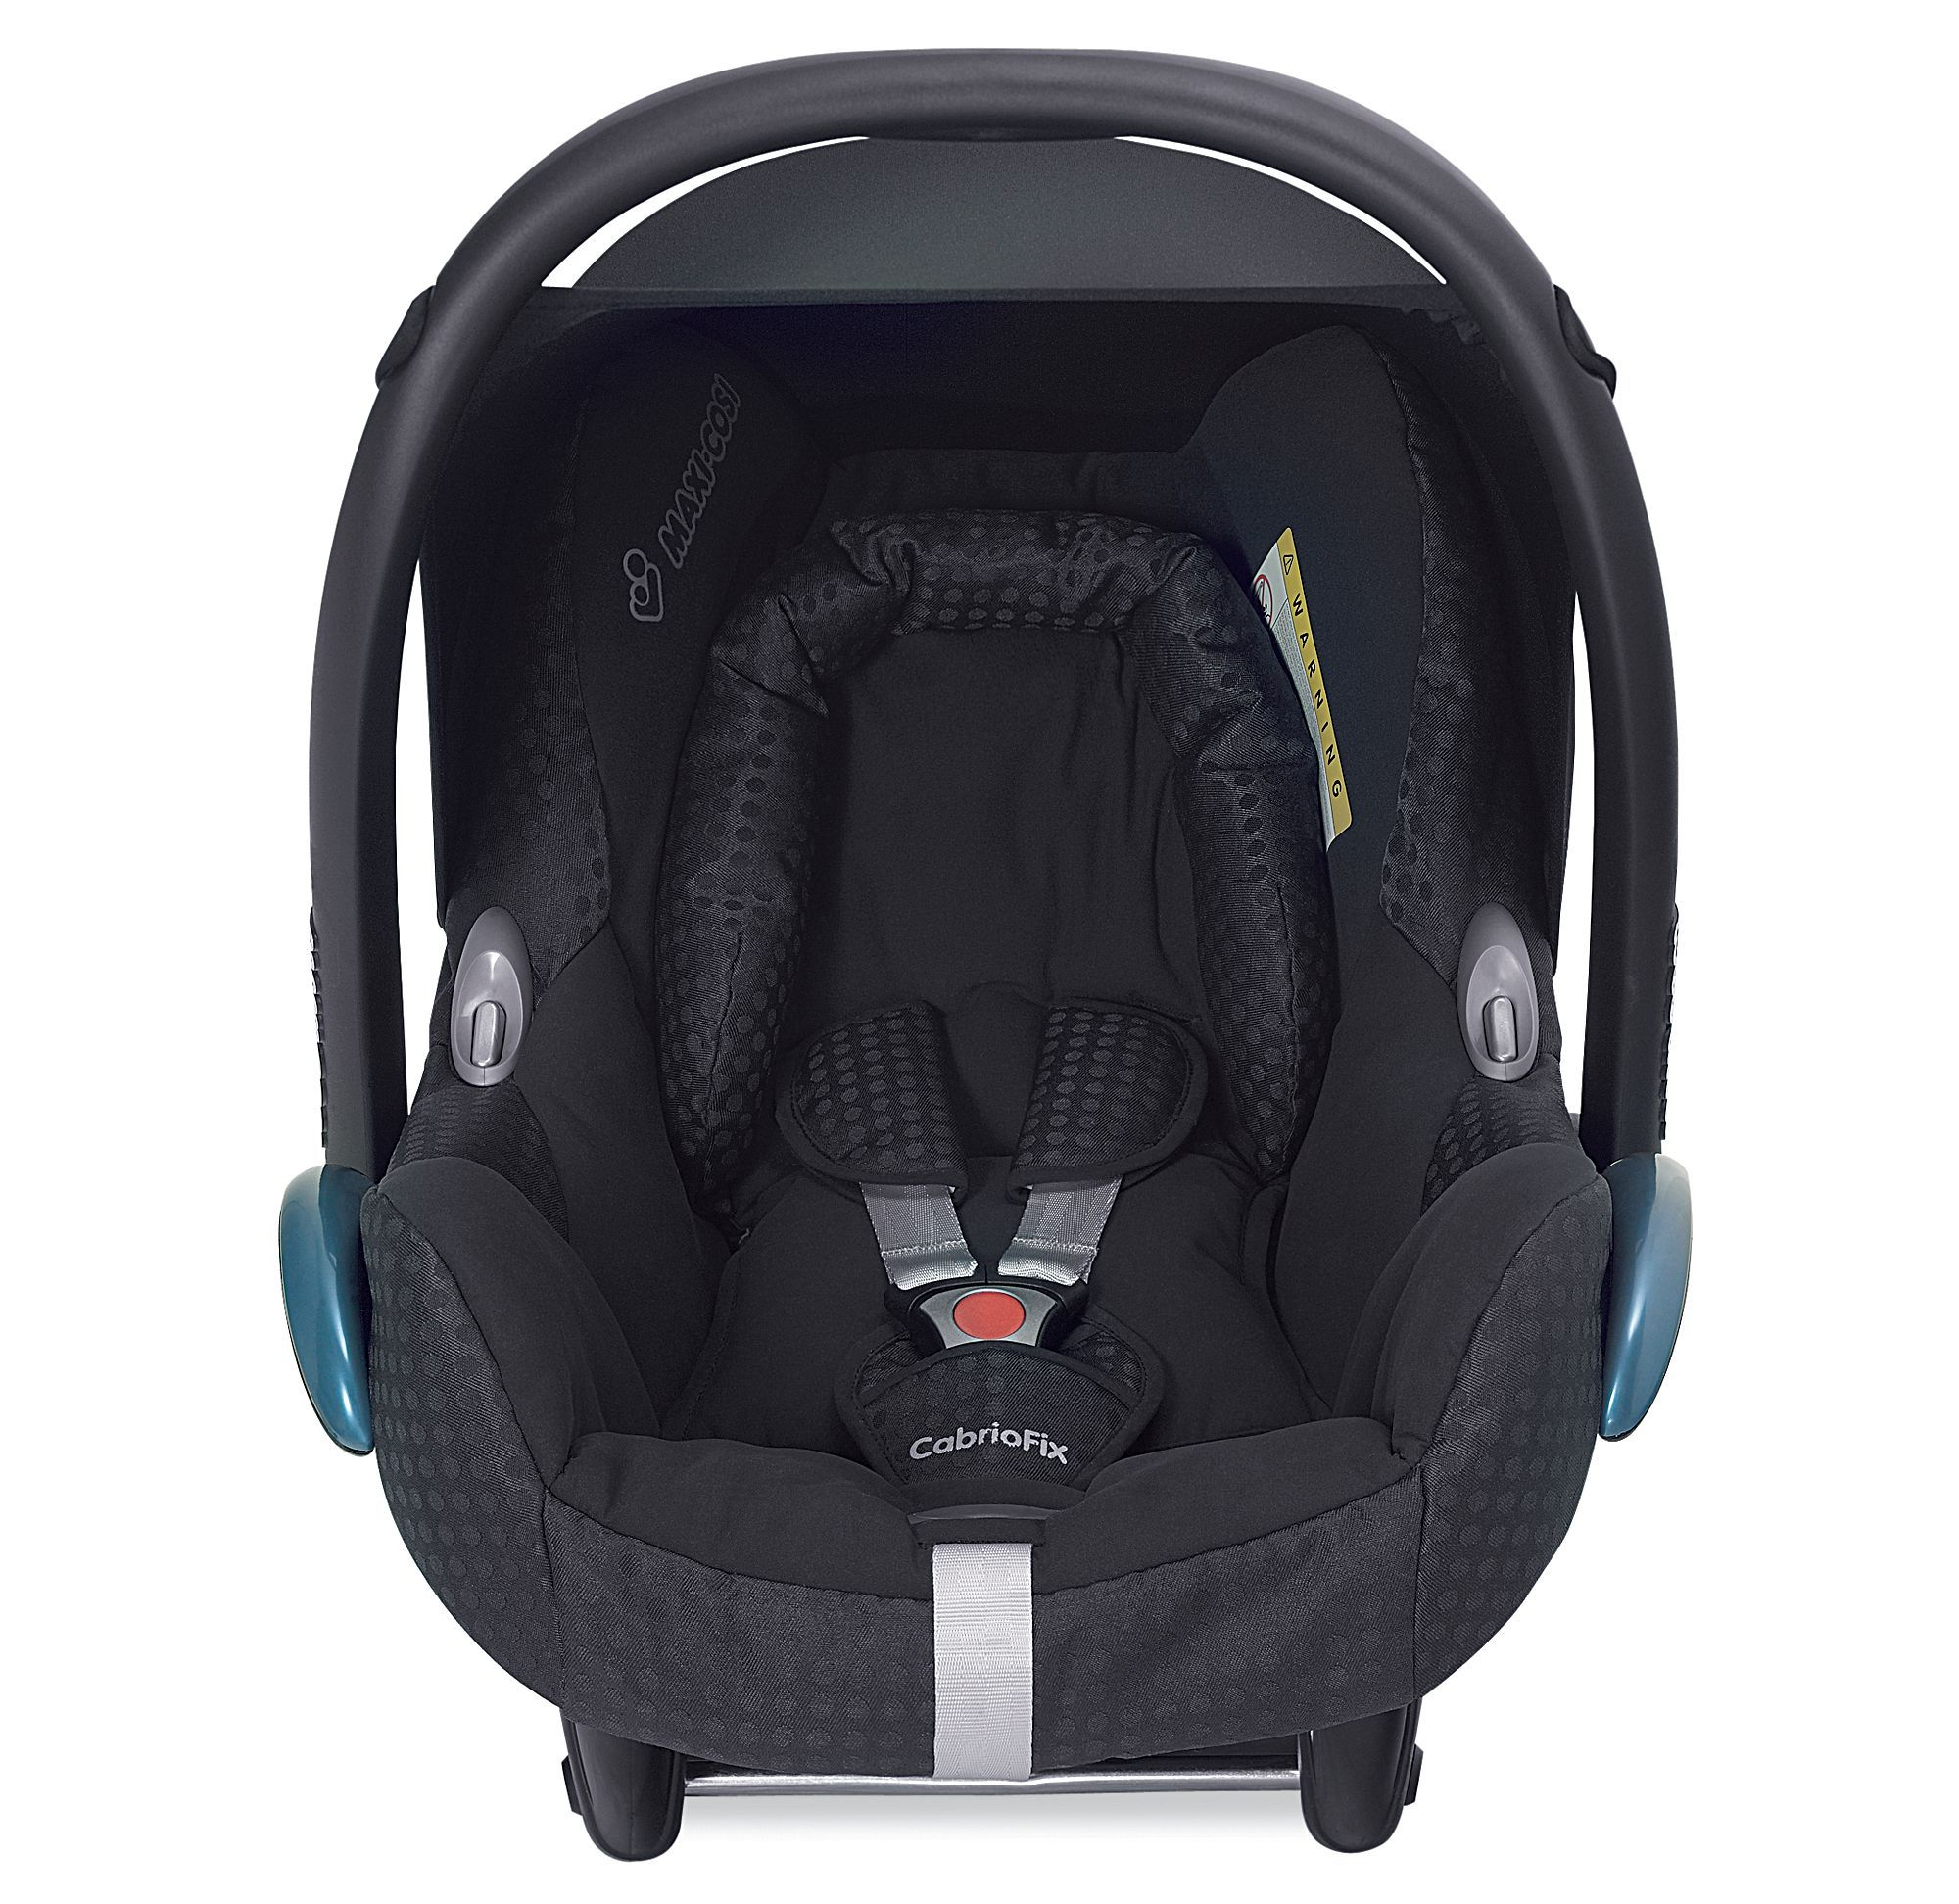 Maxi-Cosi Cabriofix Baby Car Seat - Black Jacquard *Colour Exclusive ...